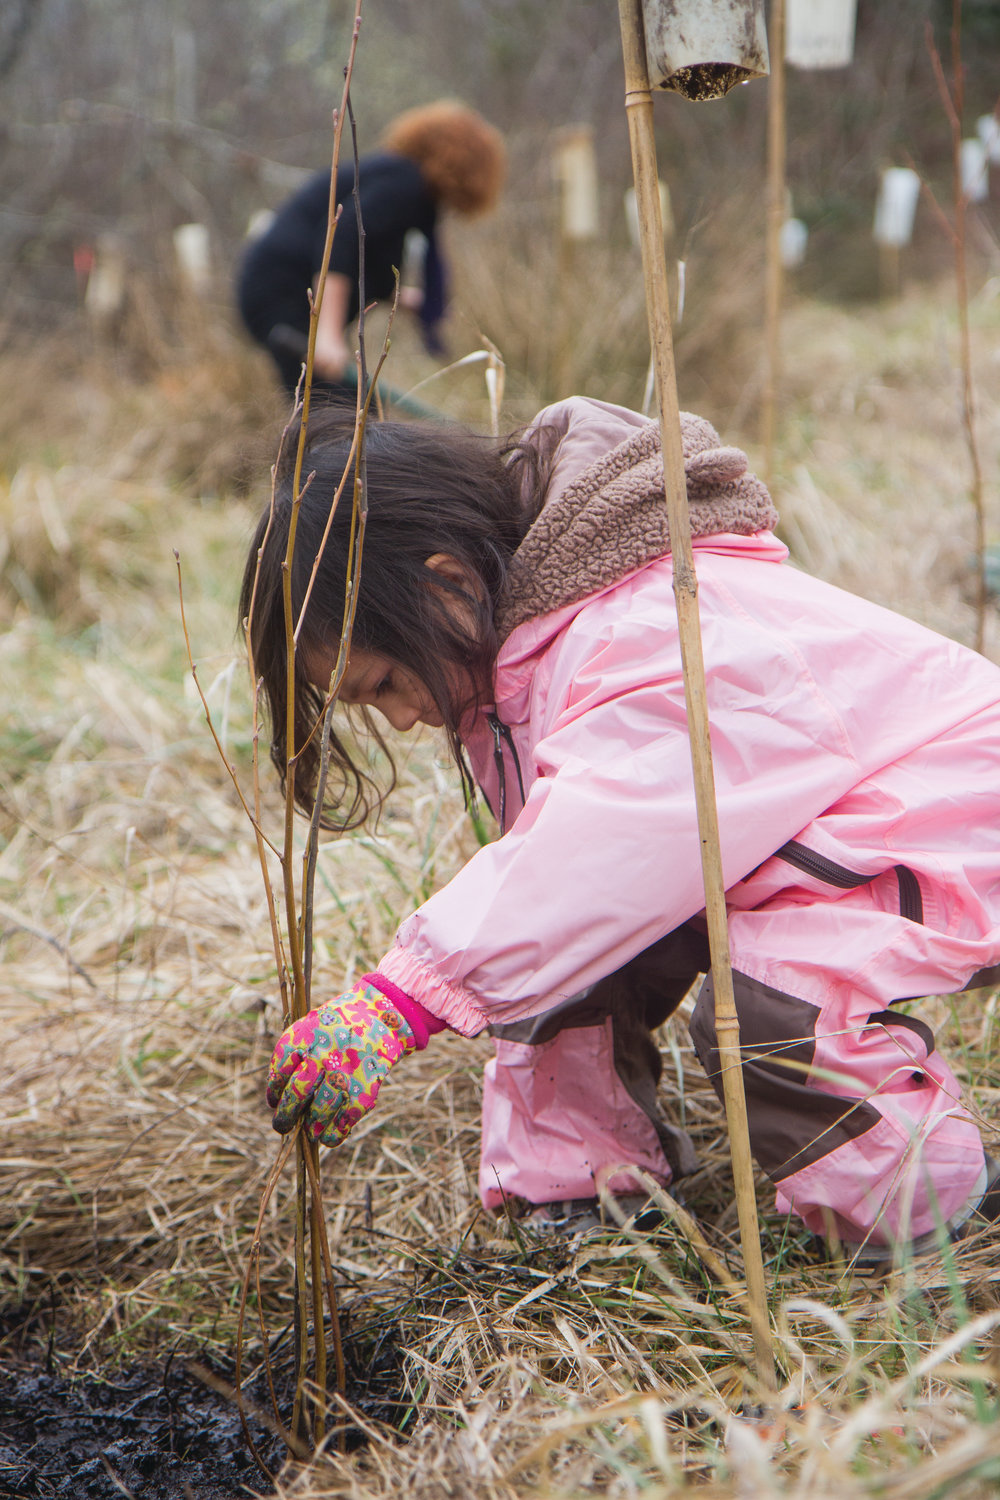 Mei Mei Galligan-Hong suited up in pink to plant trees with her mom, Molly Hong.